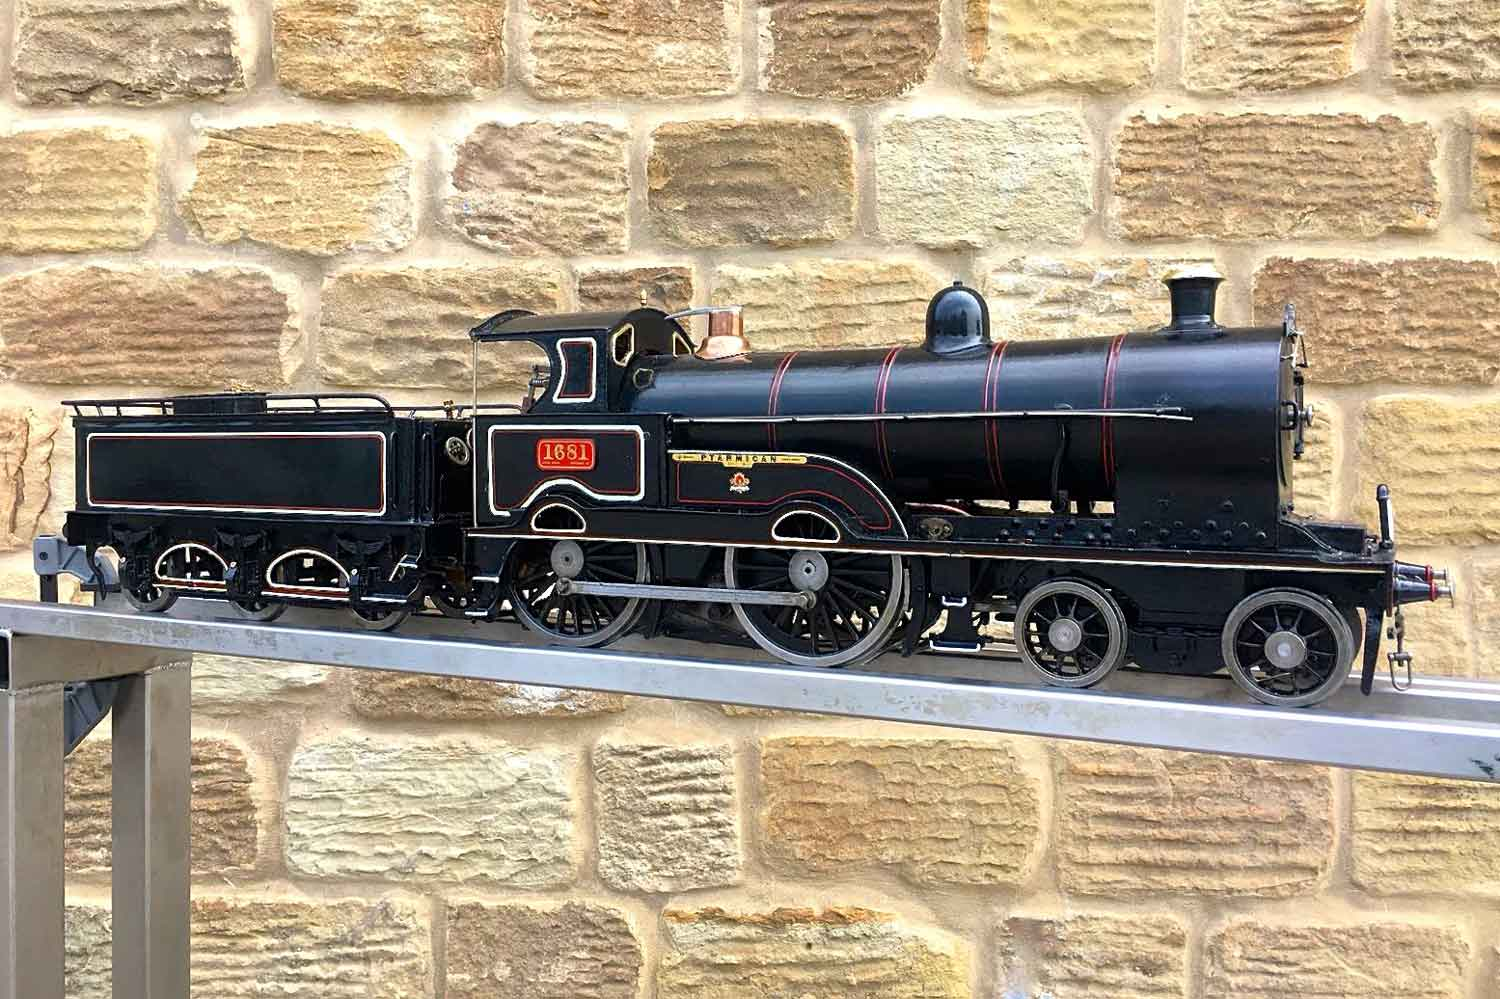 test 3-and-a-half-inch-LNWR-King-George-the-Fifth-live-steam-locomotive-for-sale-06